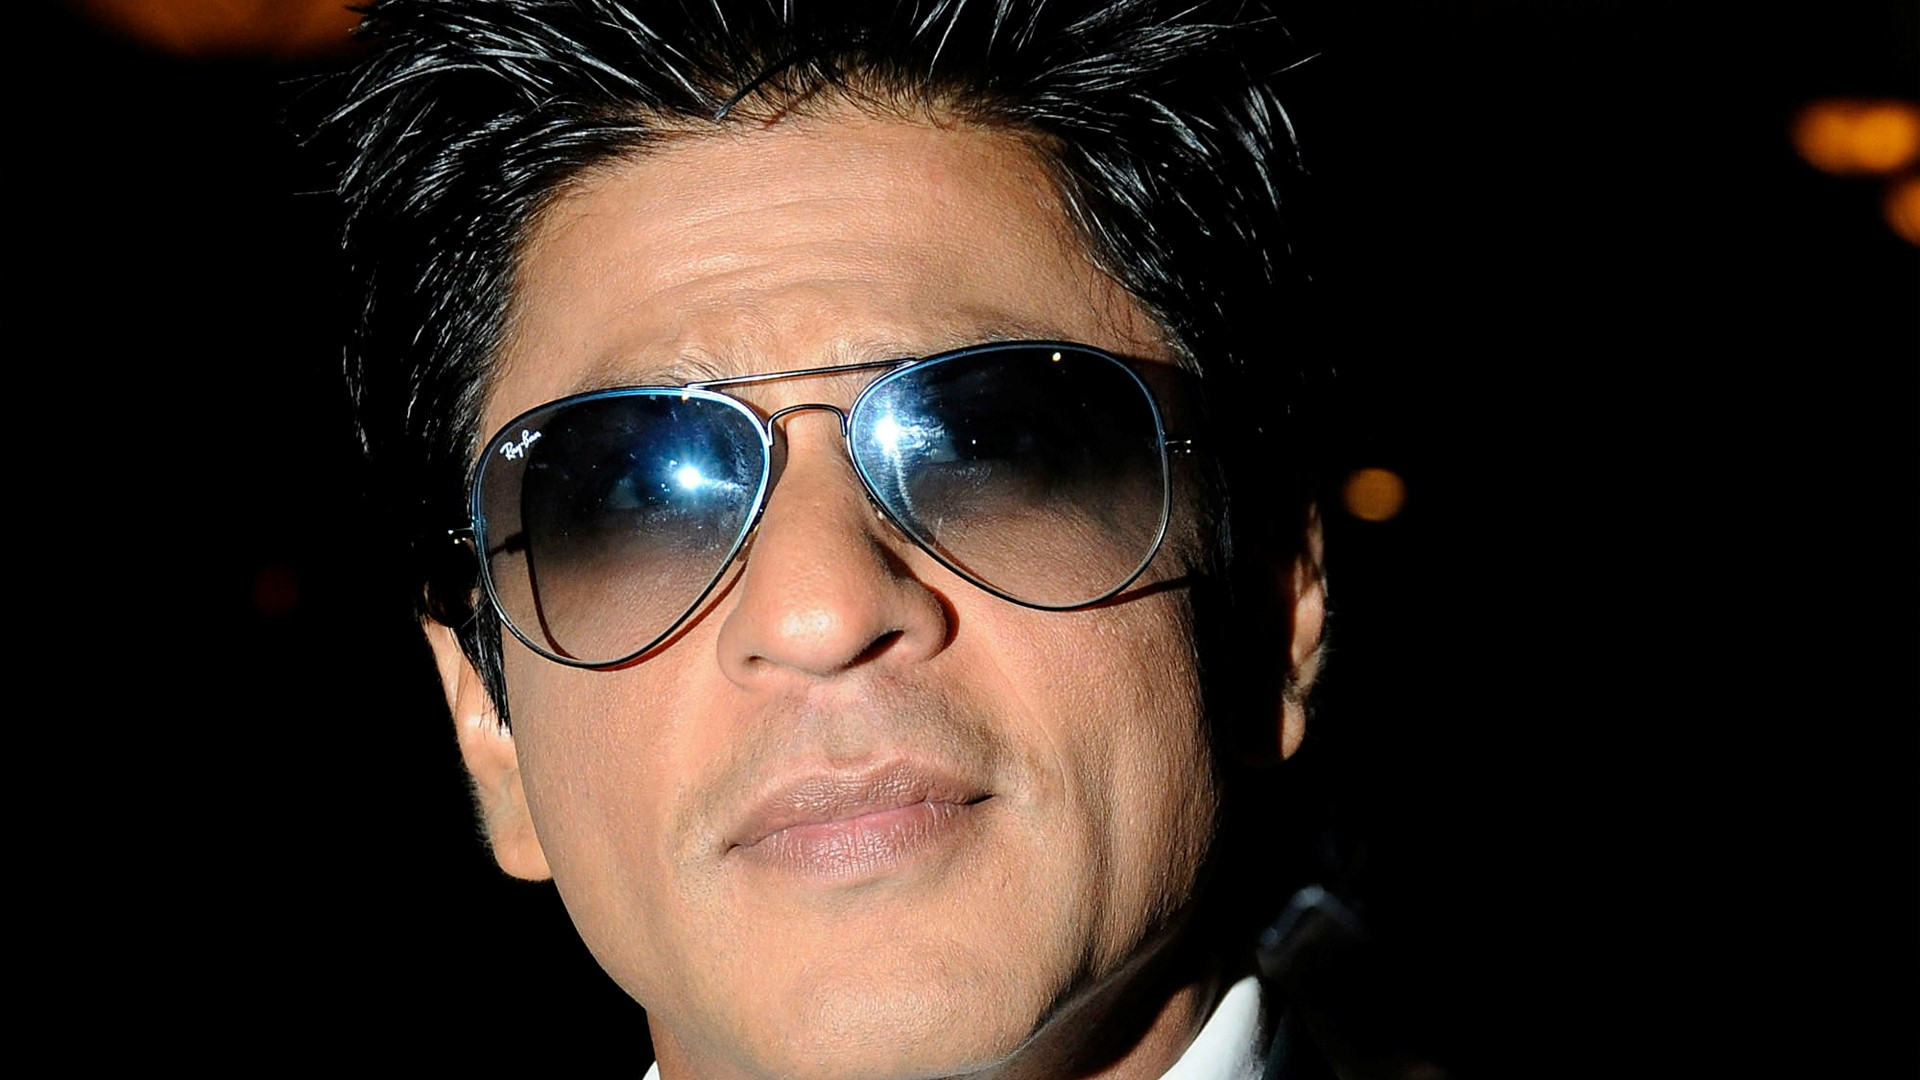 Bollywood Actor Shah rukh Khan Pictures HD 4